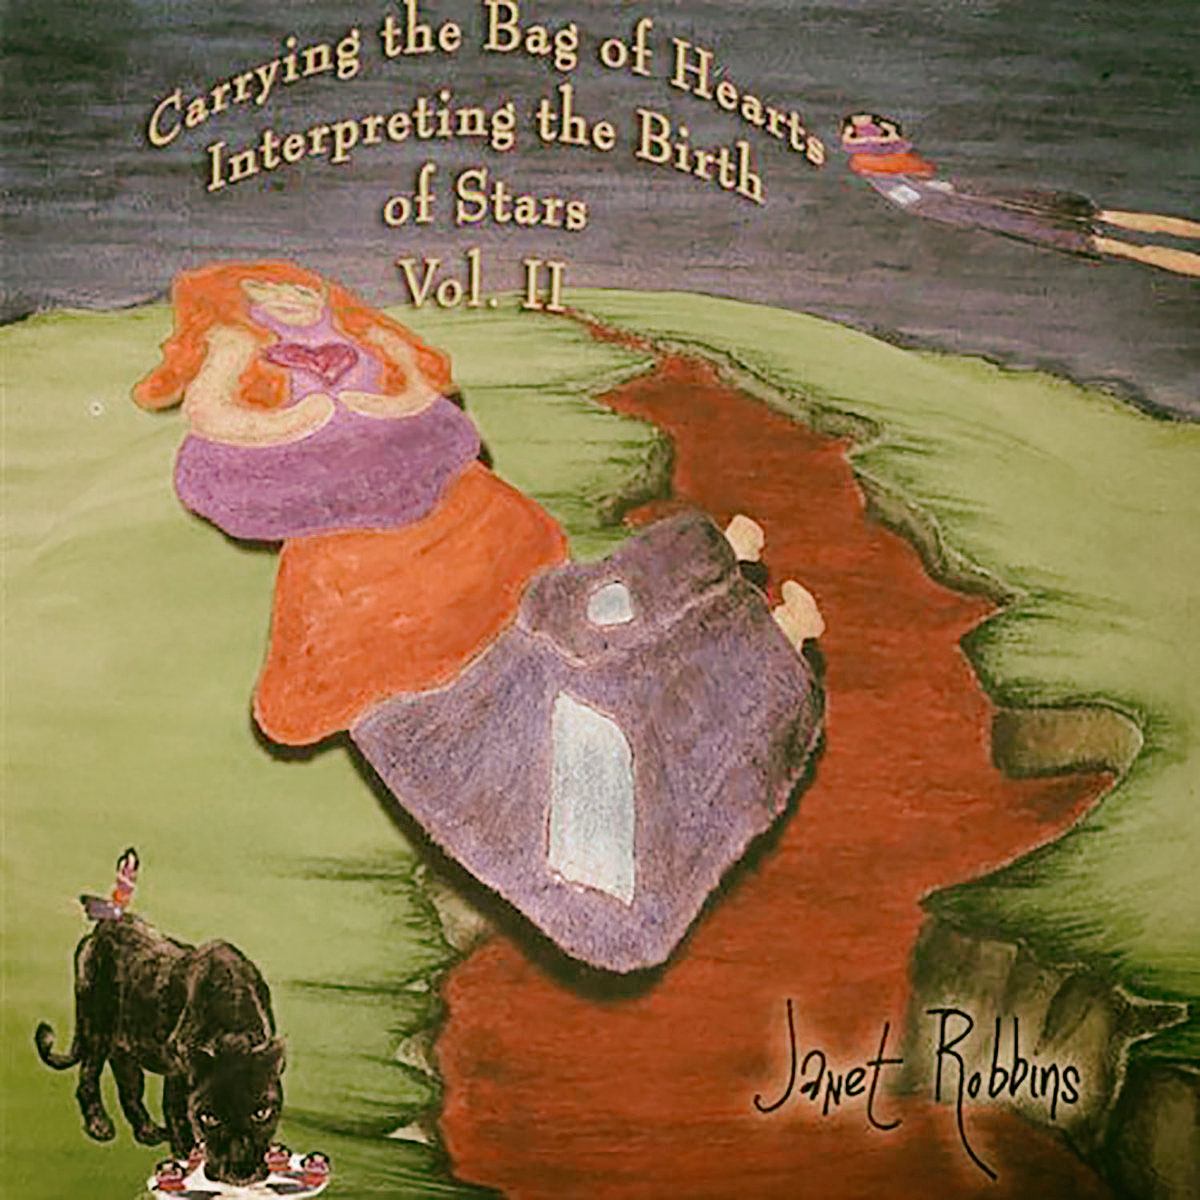 Janet Robbins - Carrying the Bag of Hearts Interpreting the Birth of Stars Vol. II